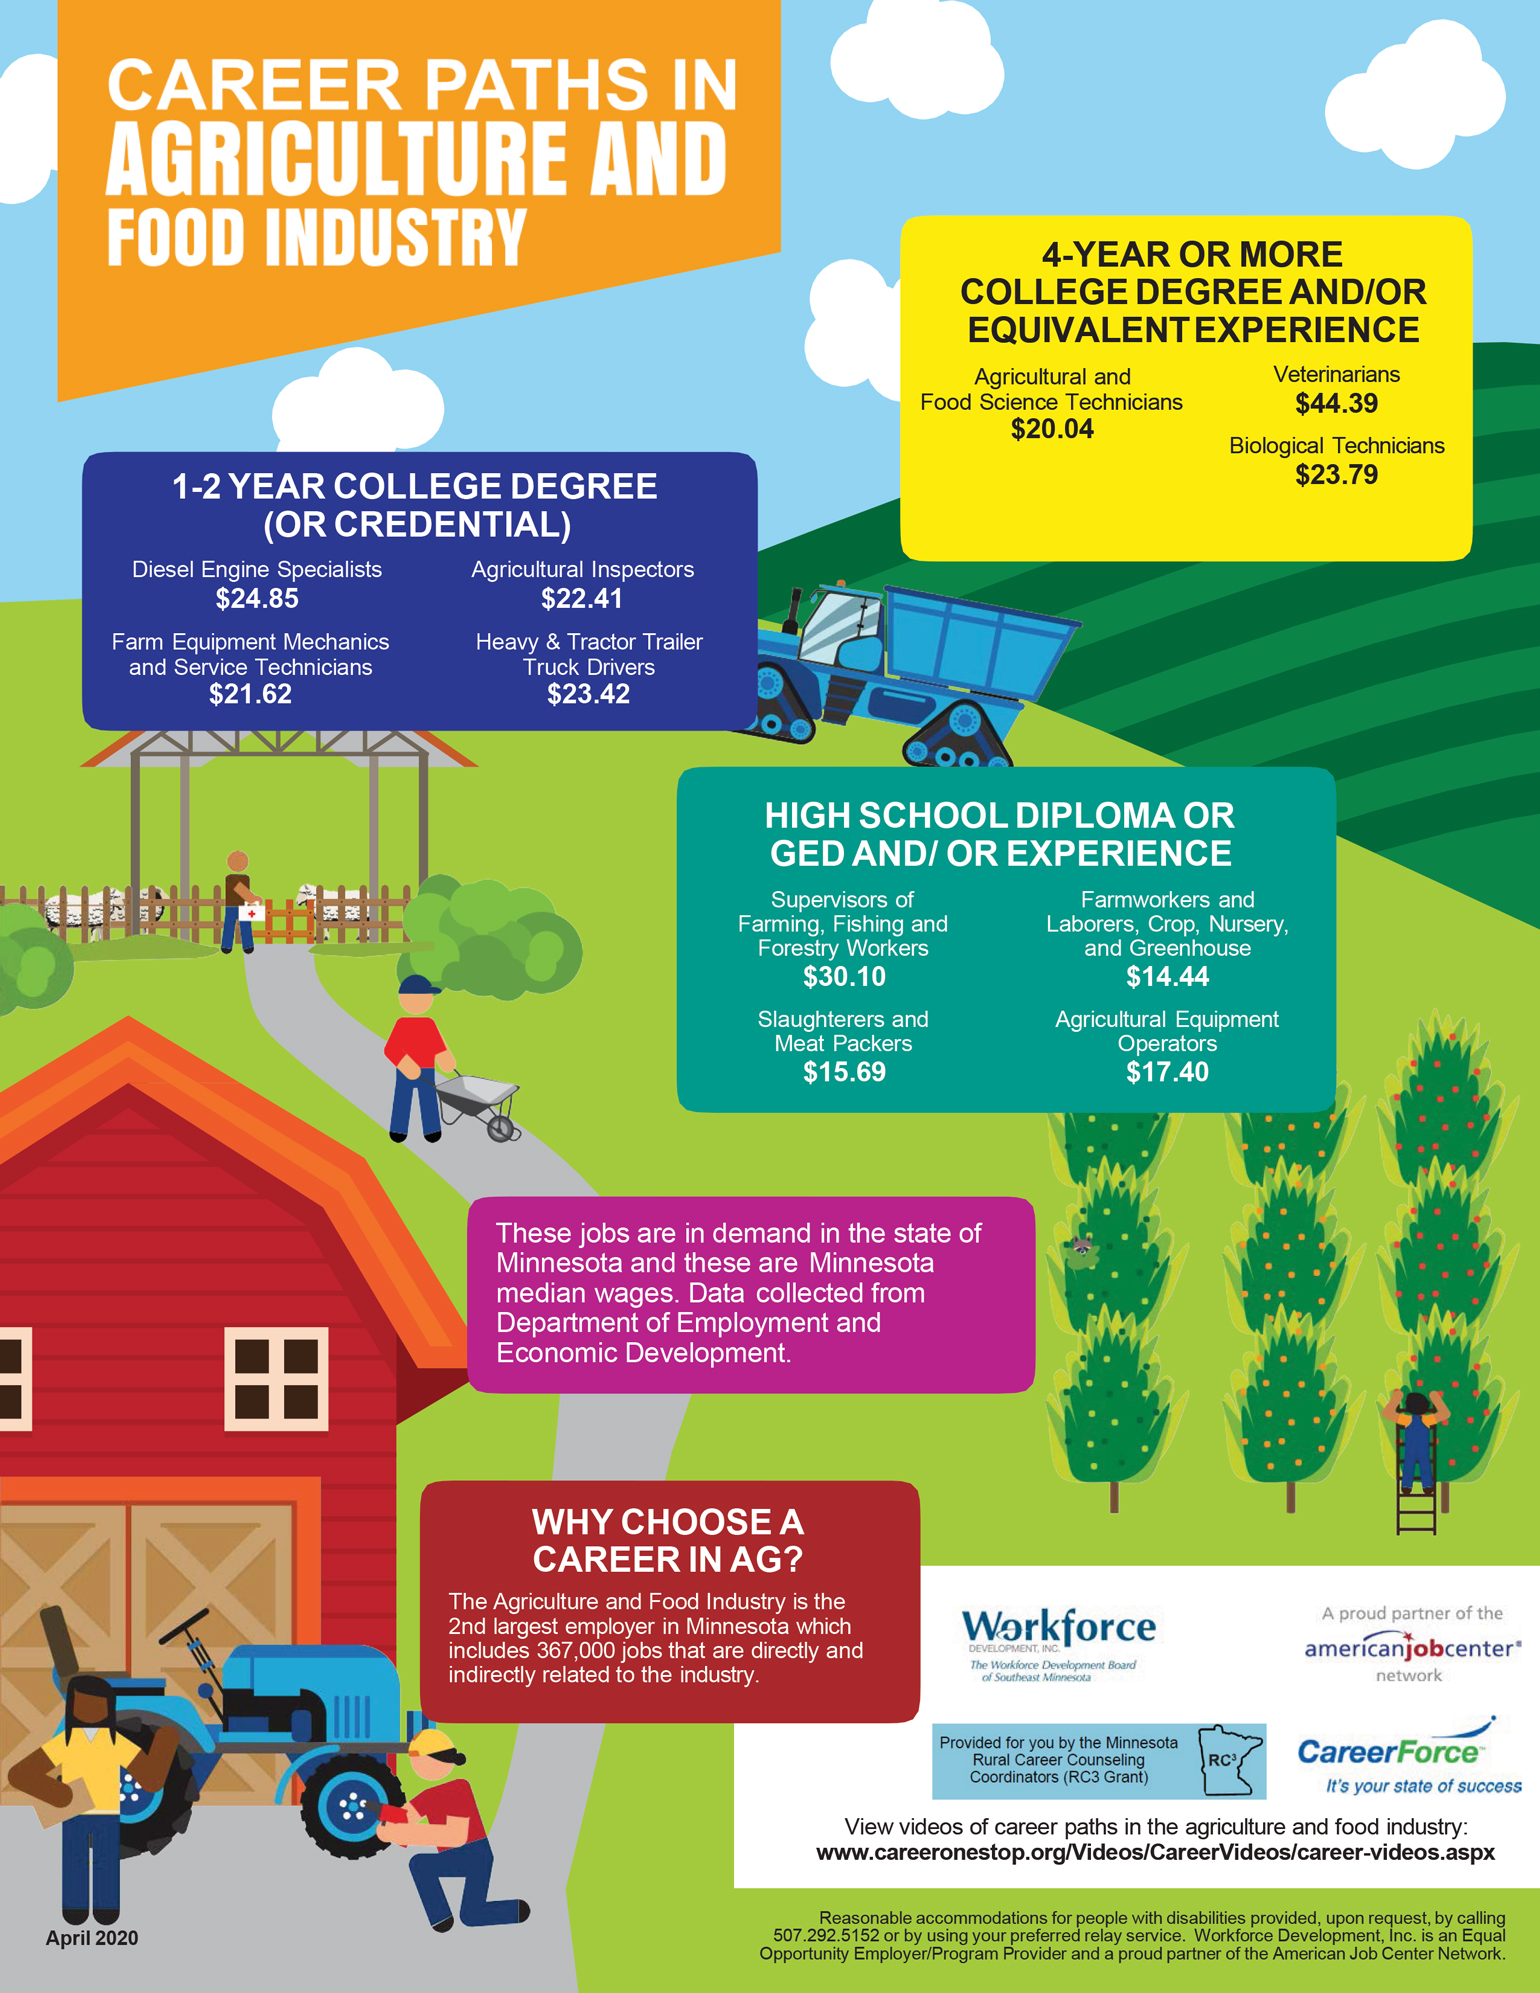 career paths in agriculture infographic